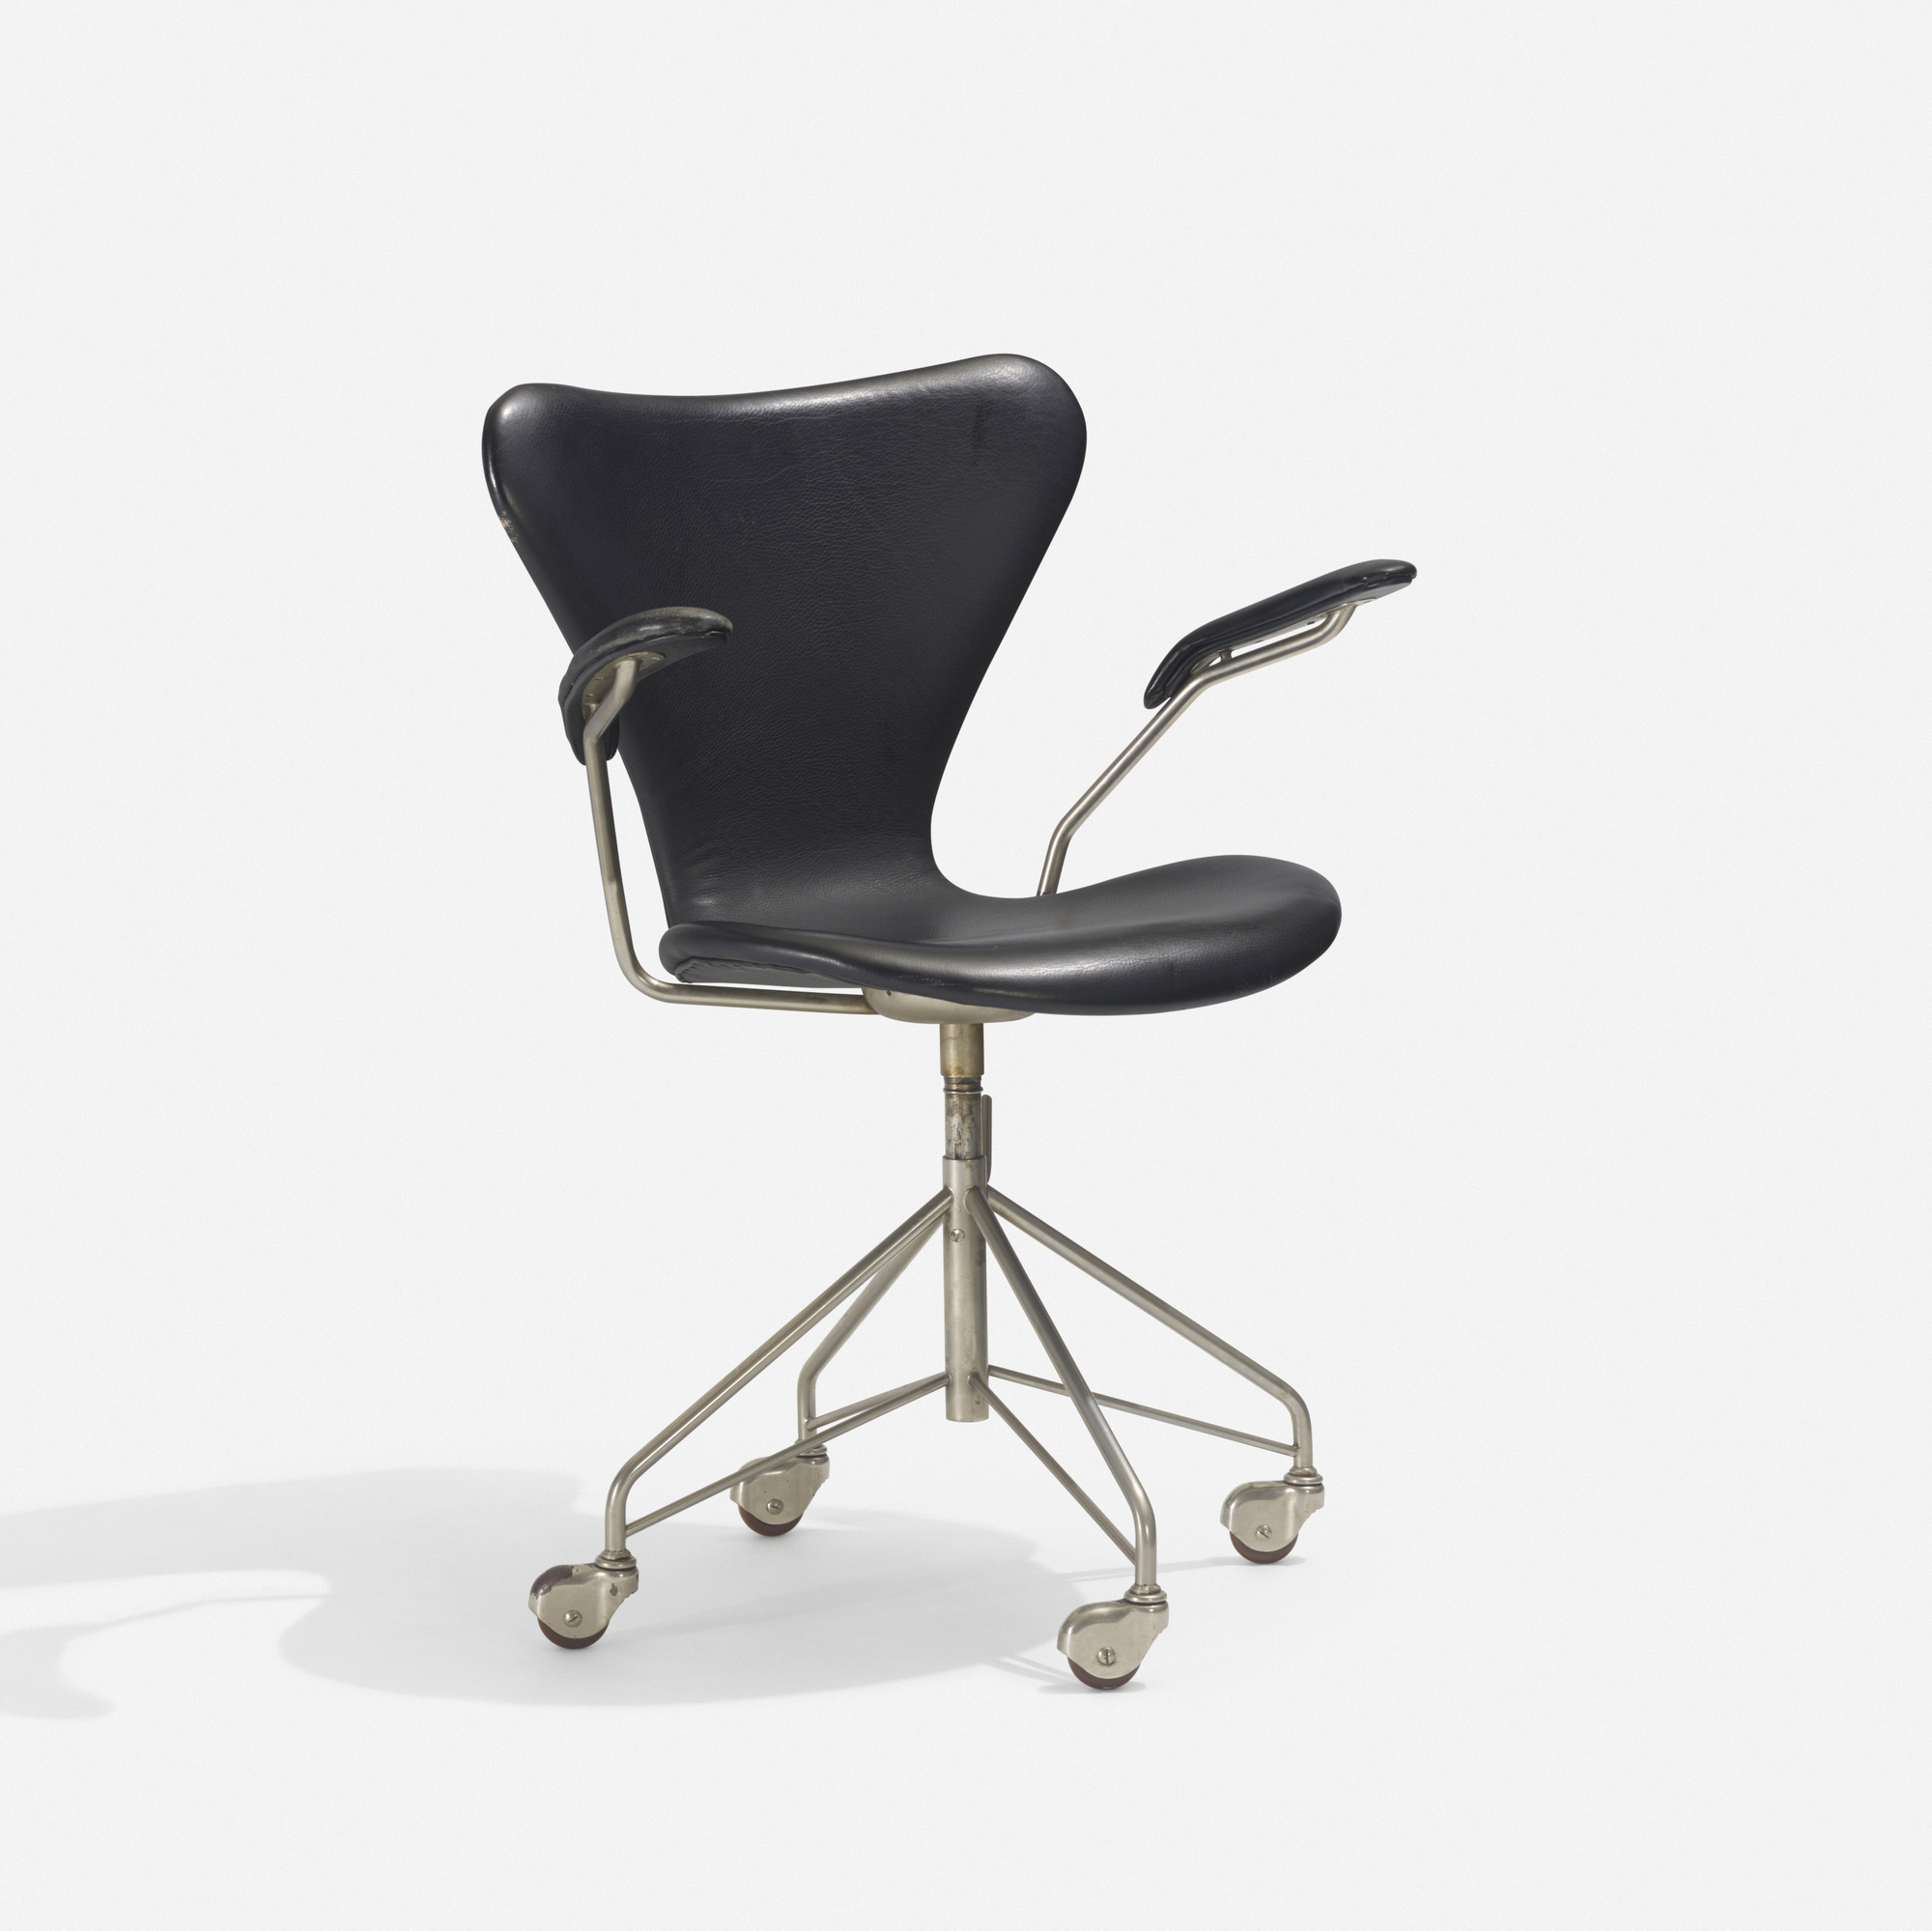 221: Arne Jacobsen / Sevener desk chair, model 3117 (1 of 2)